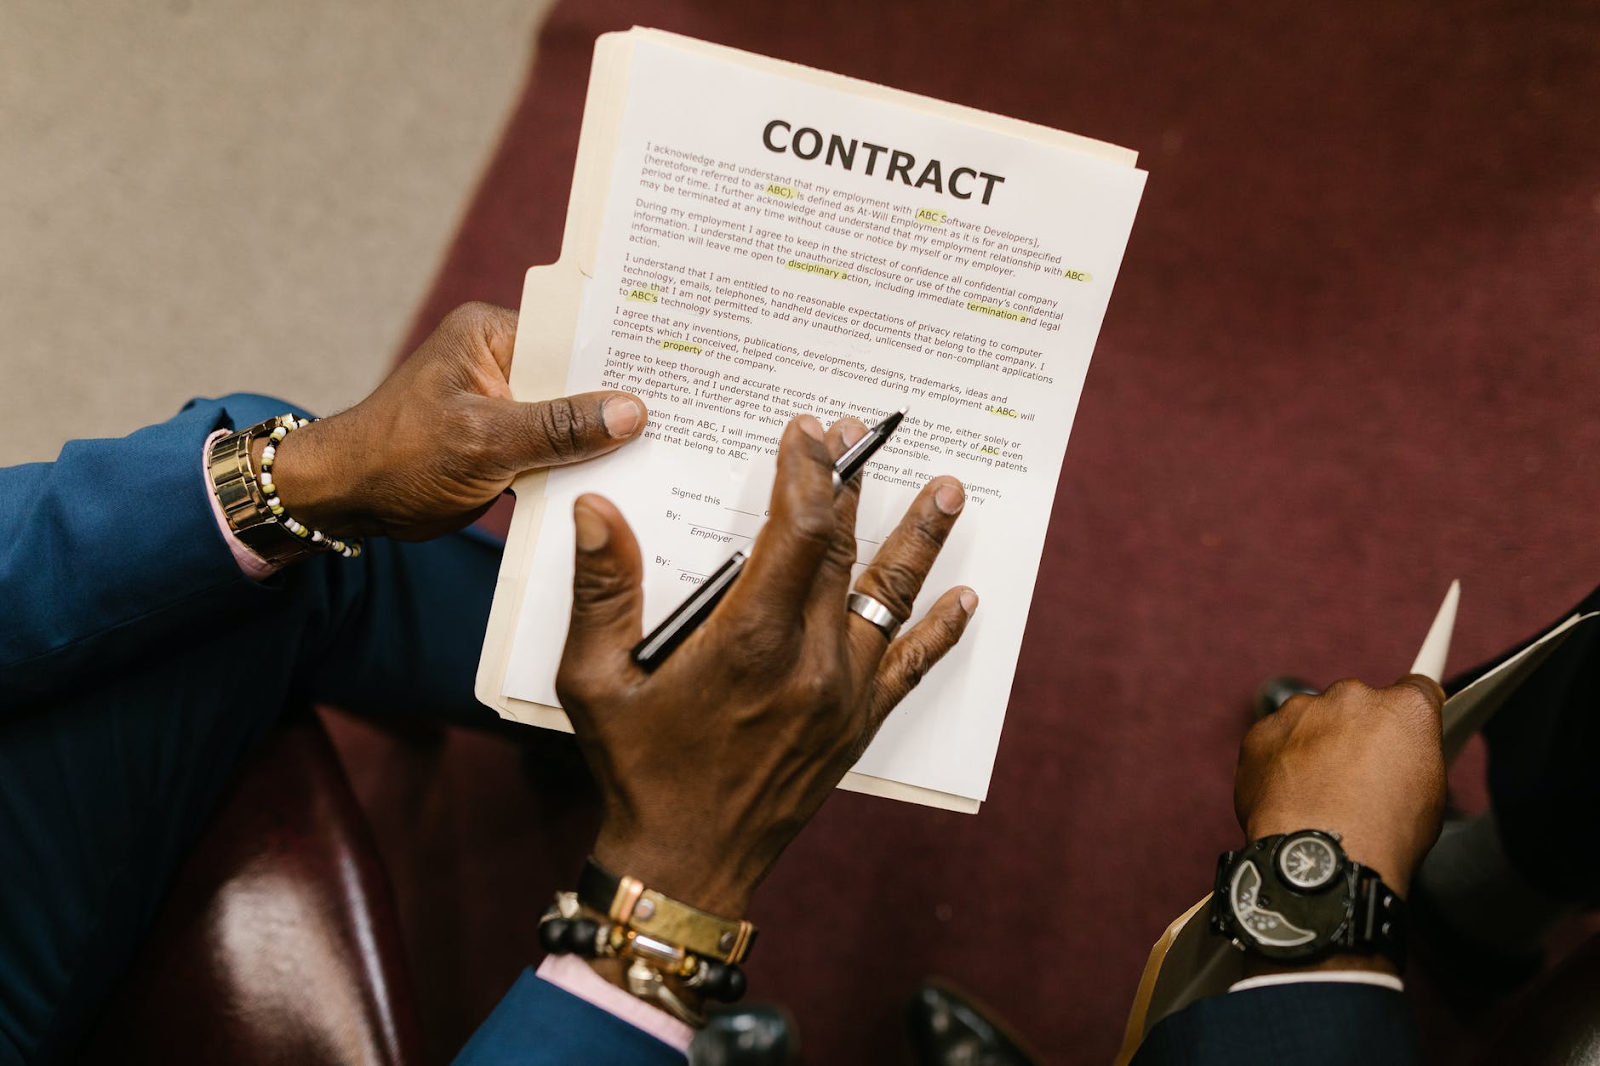 Person holding a contract and explaining the contents to another